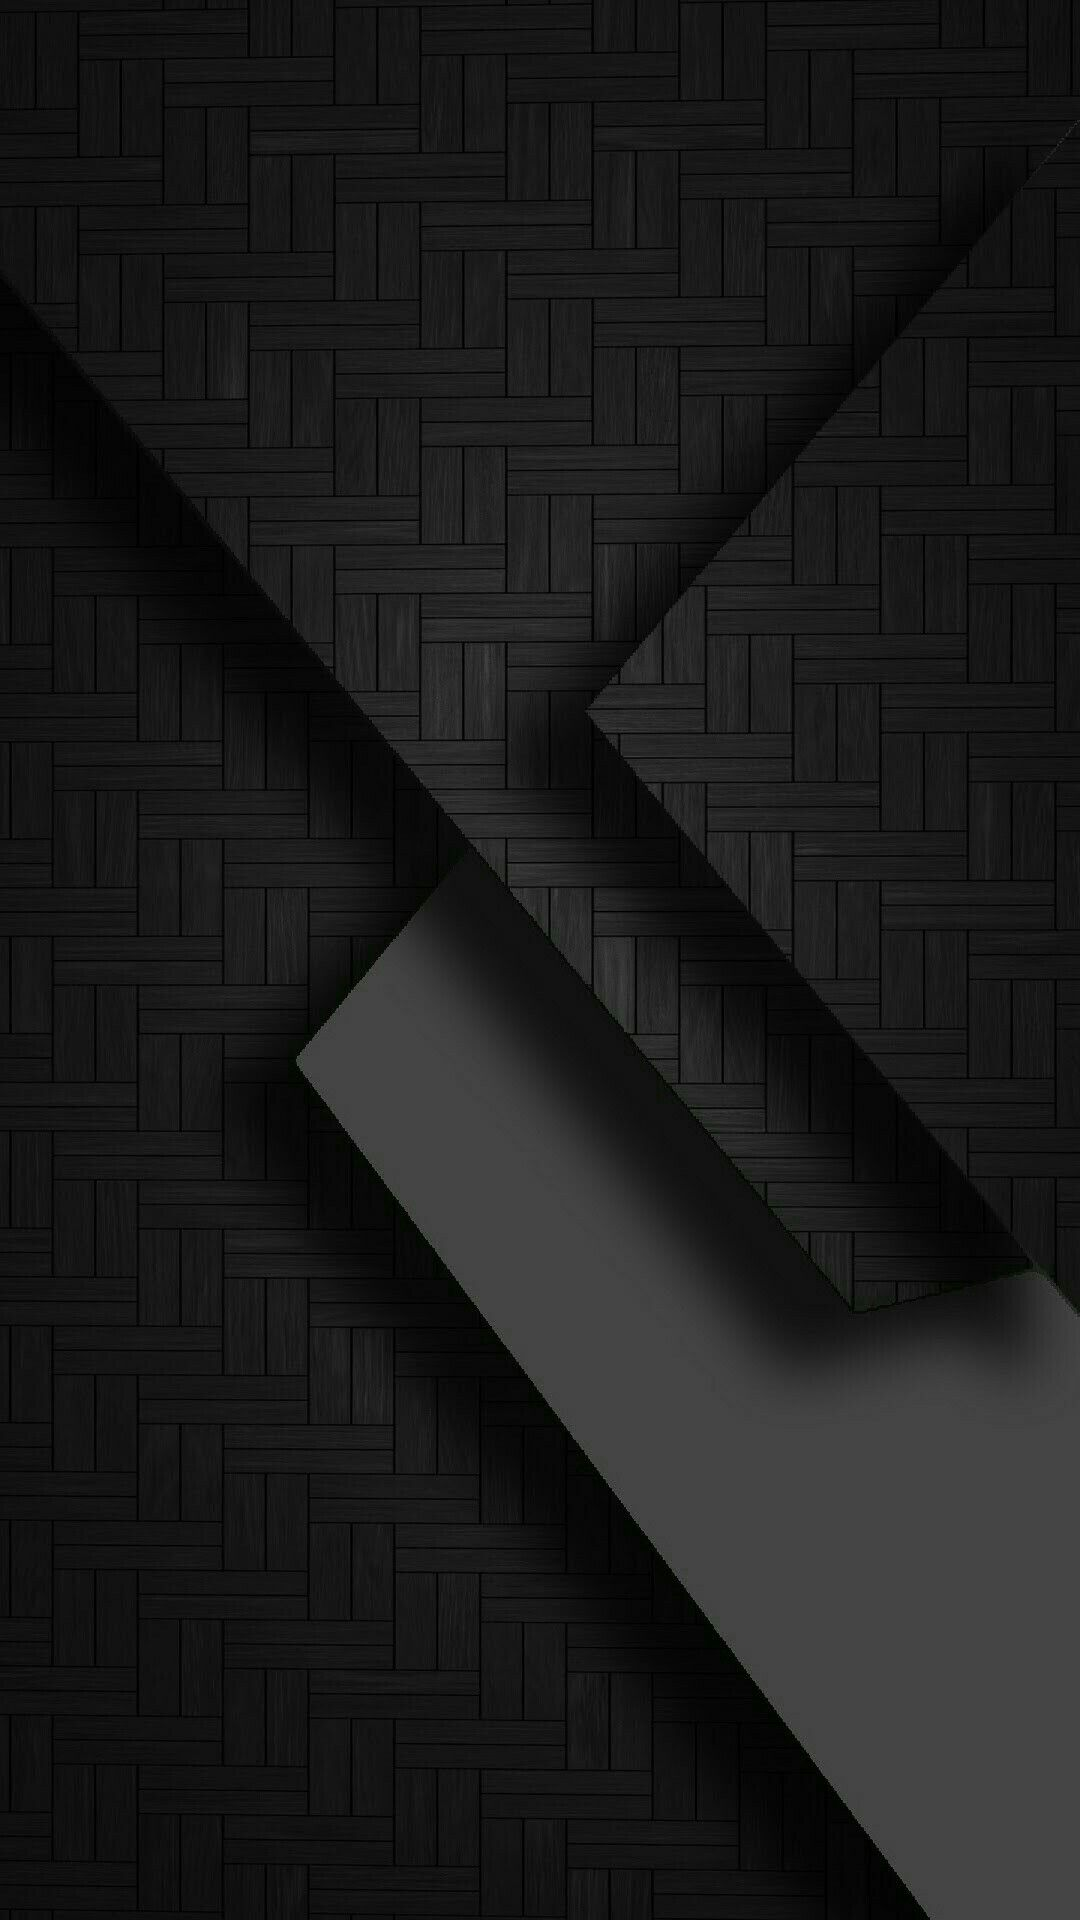 Wallpaper Of Dark And Black Background Wallpaper Background Dark Black Dark Wallpaper Black Phone Wallpaper Black Wallpaper